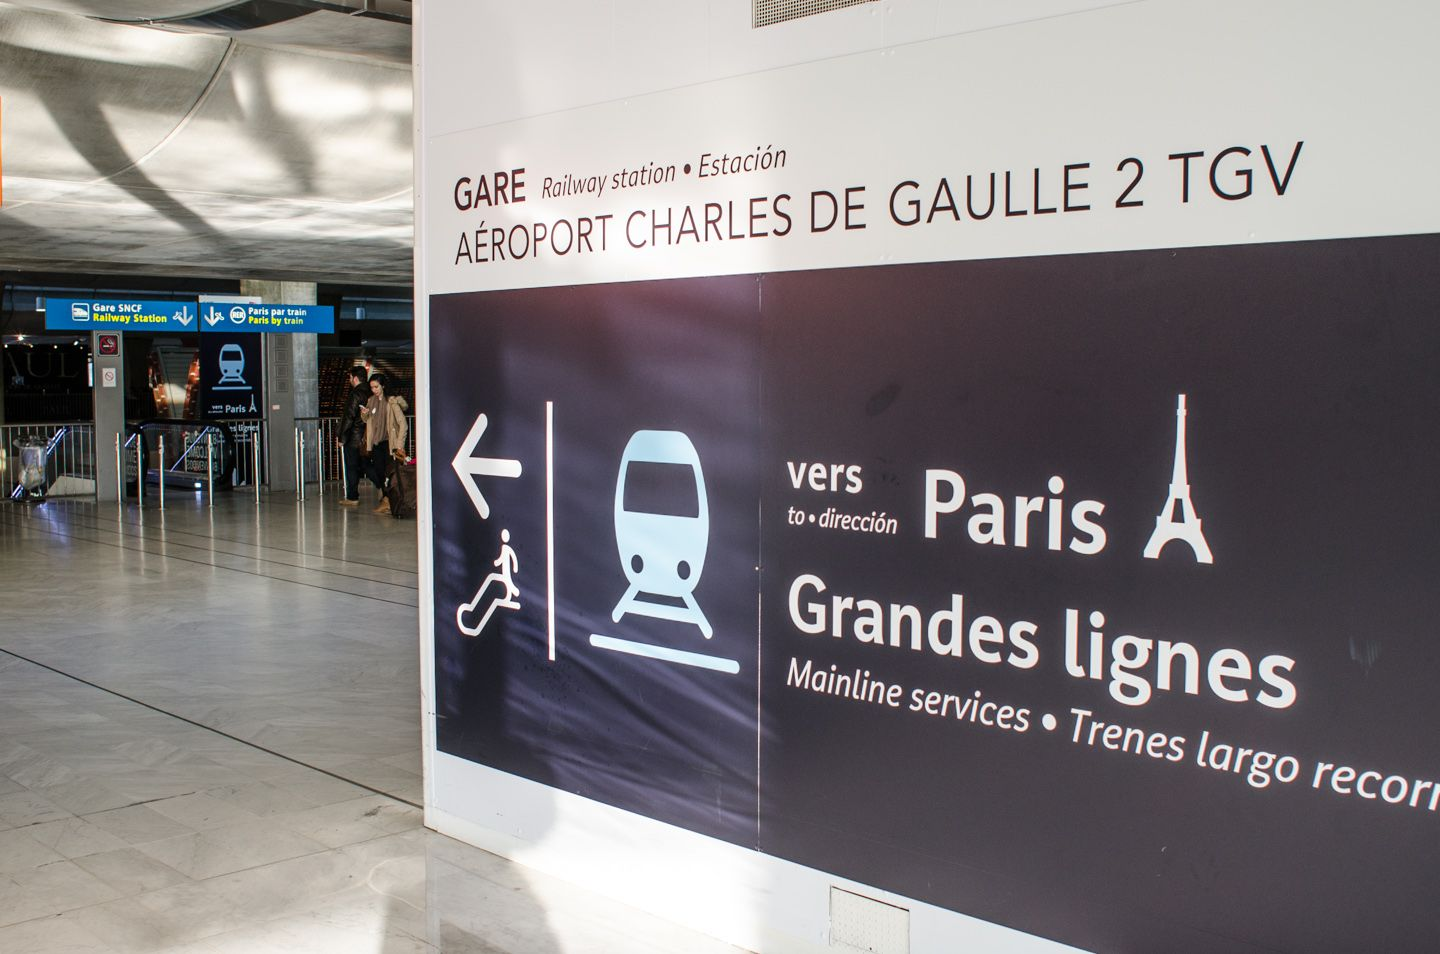 Instructions from terminal 2 to RER train